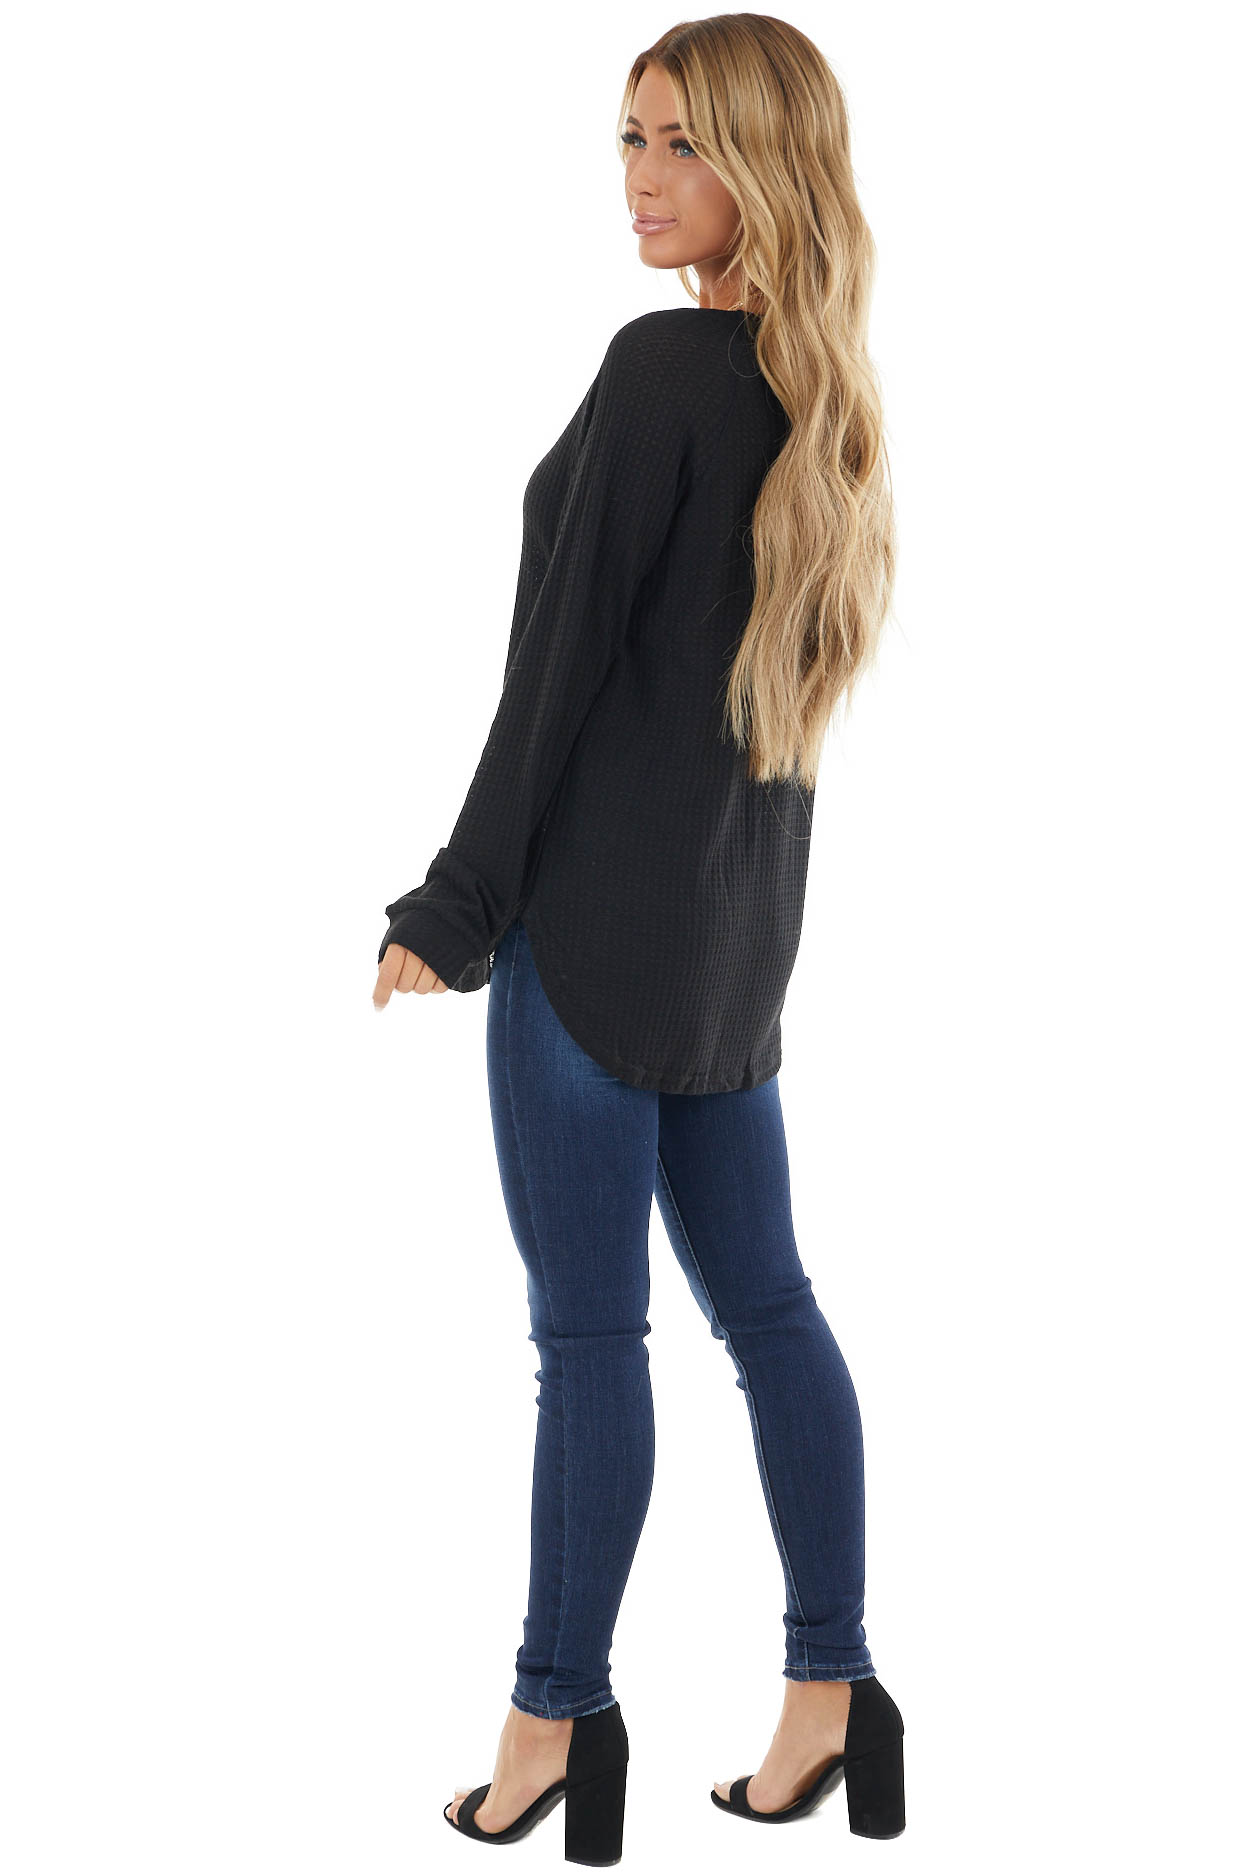 Black Long Sleeve Waffle Knit Top with Rounded Neckline